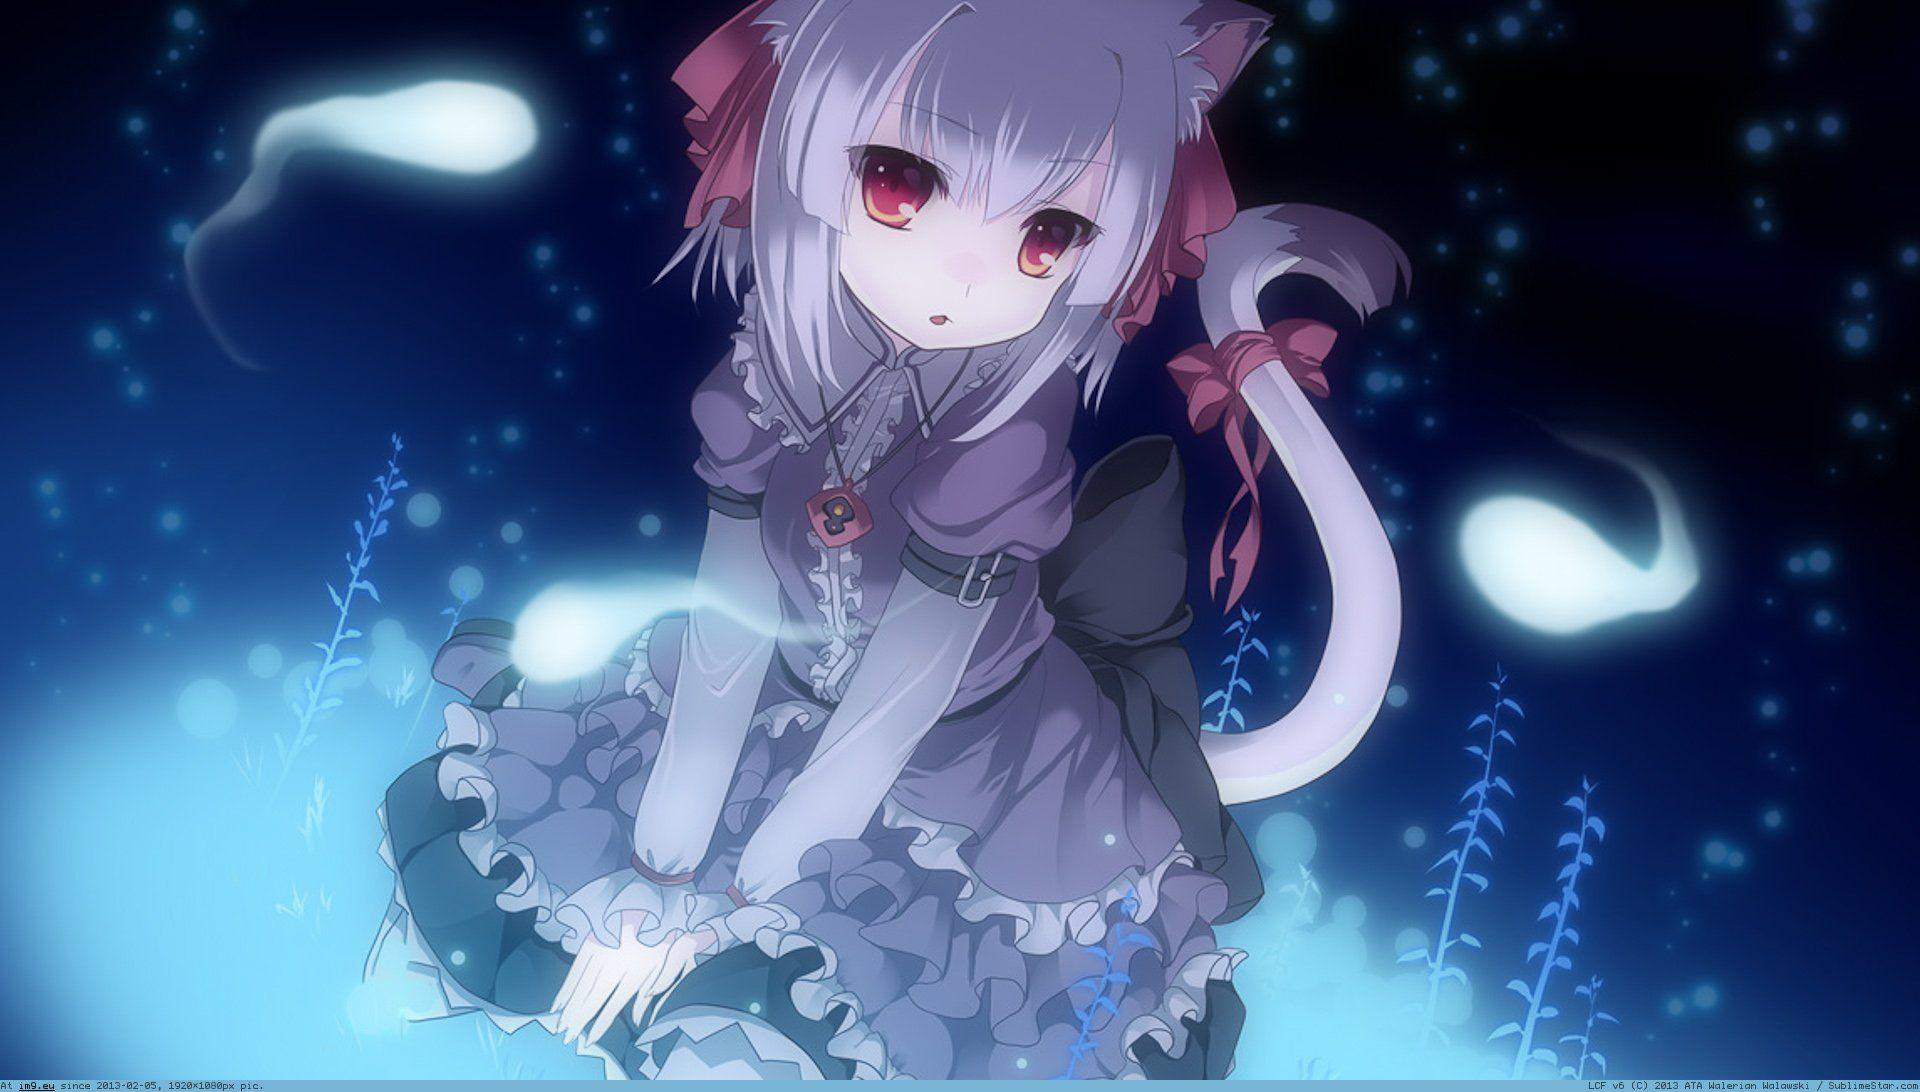 Cute Anime Cat Girl Wallpapers Top Free Cute Anime Cat Girl Backgrounds Wallpaperaccess